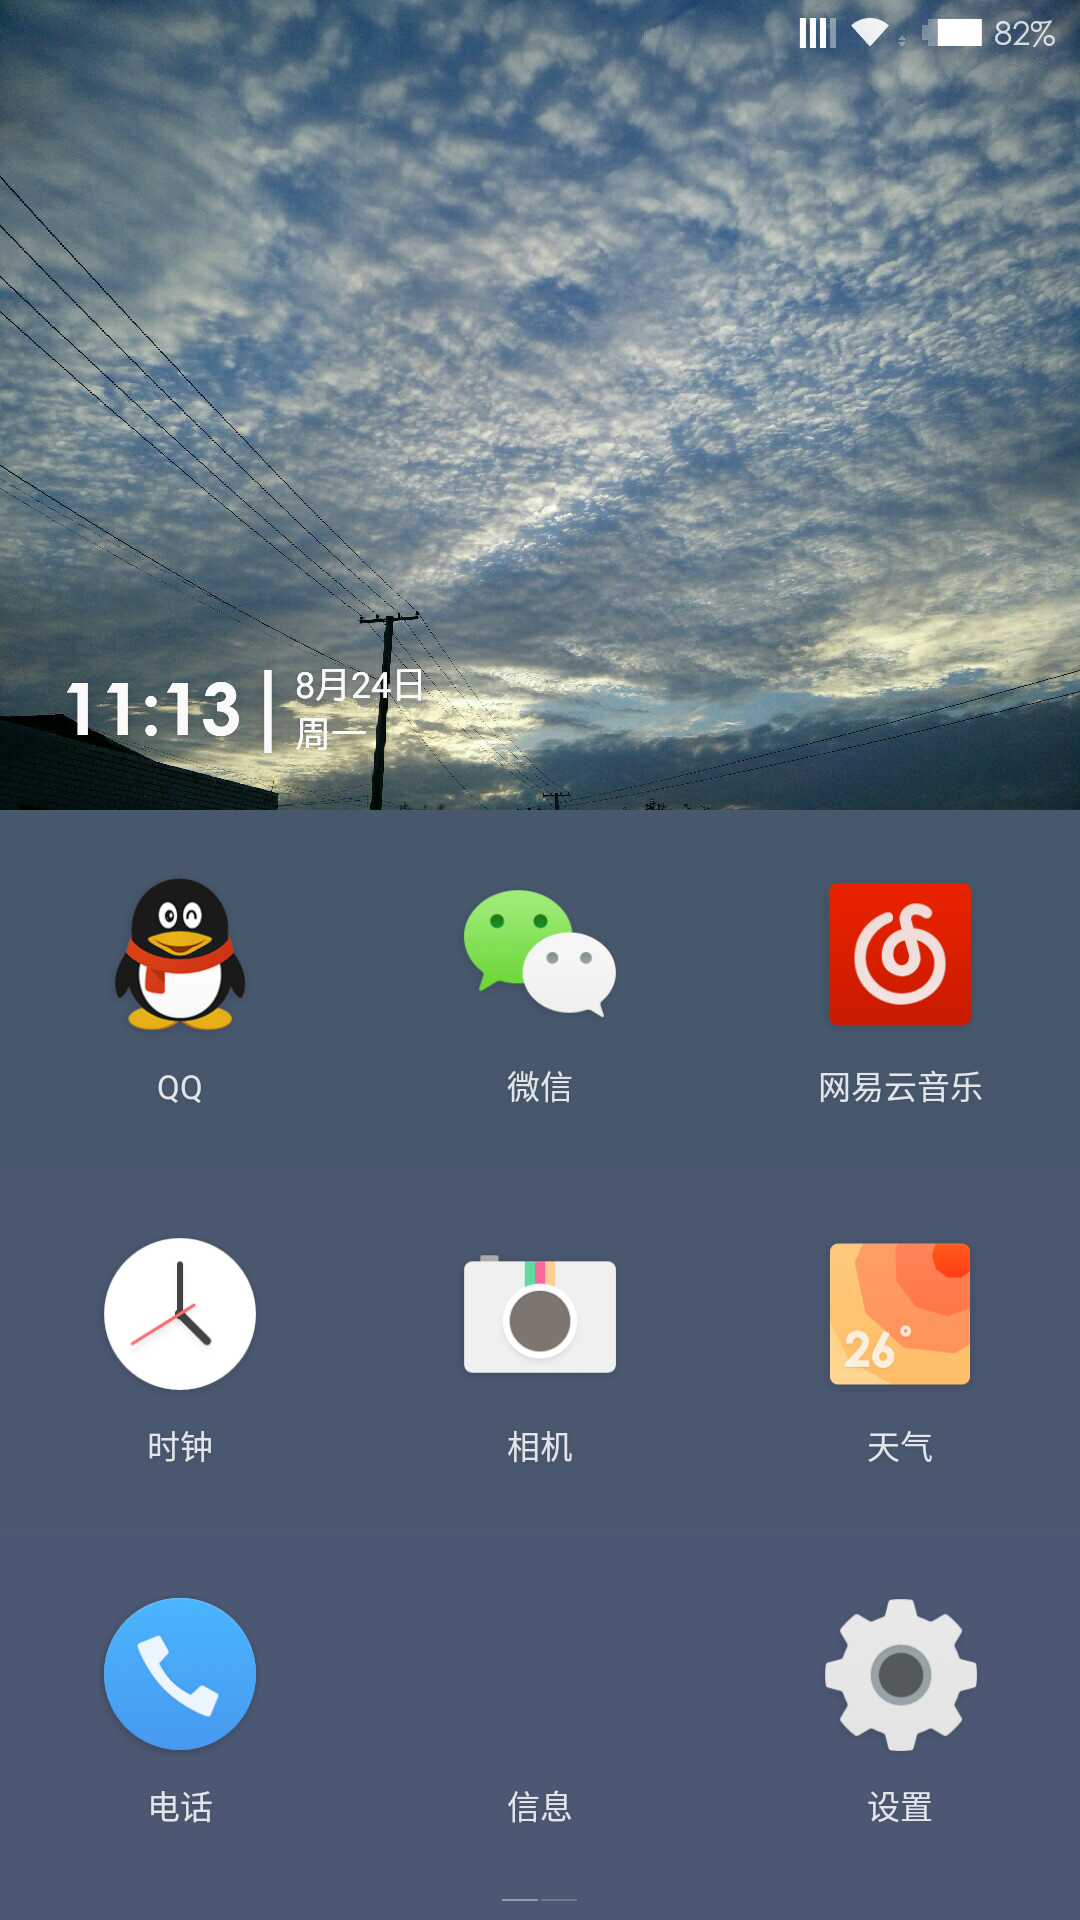 Screenshot_2015-08-24-11-13-04.png